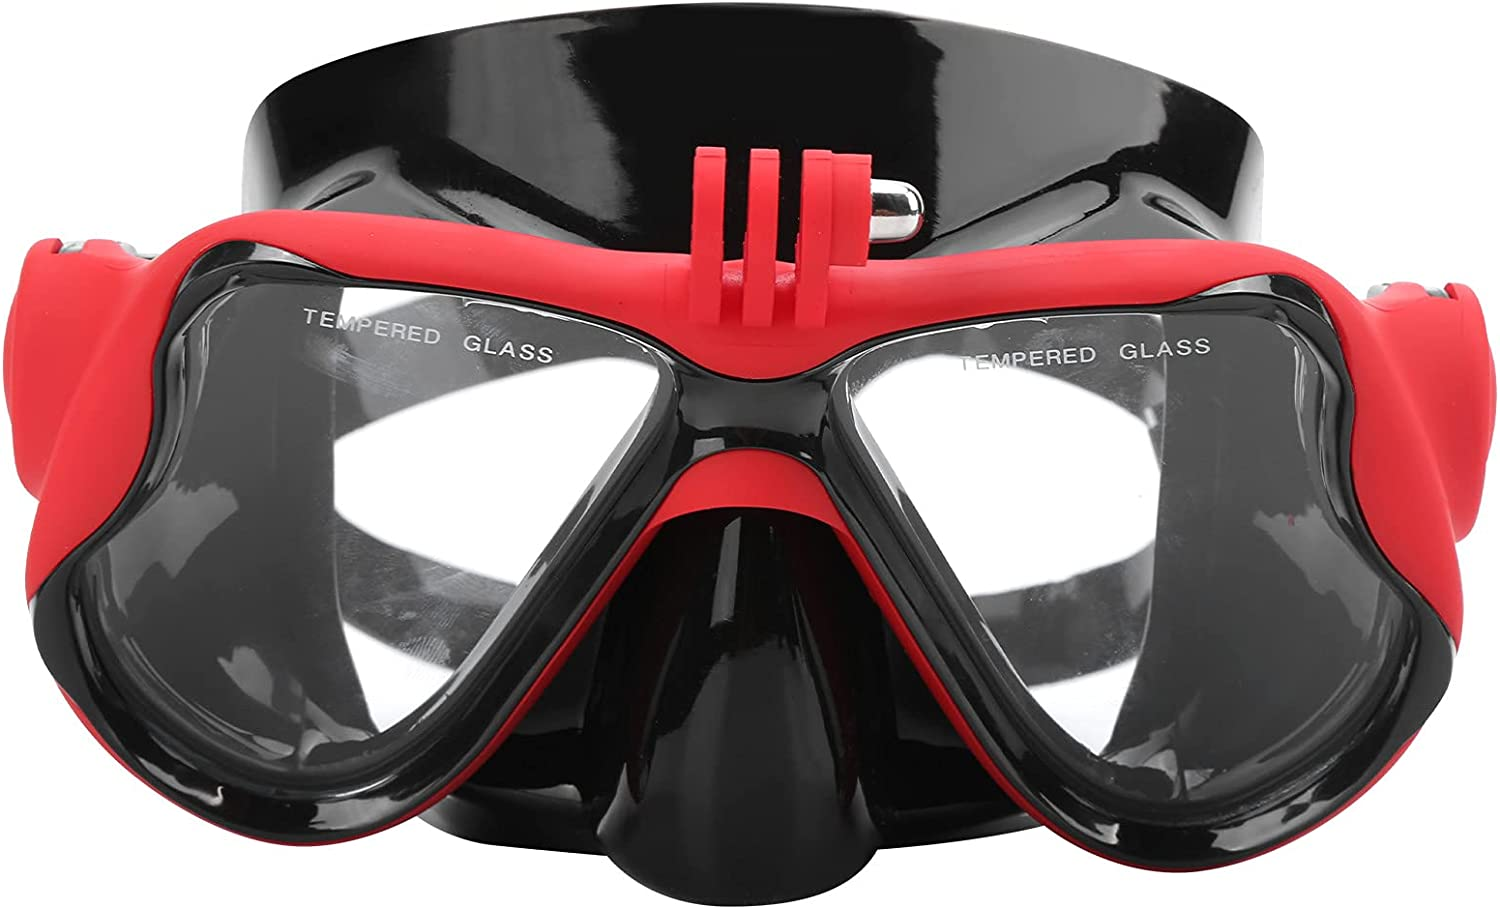 YUUGAA Snorkeling Goggles Diving Ranking TOP20 Face S gift Guard